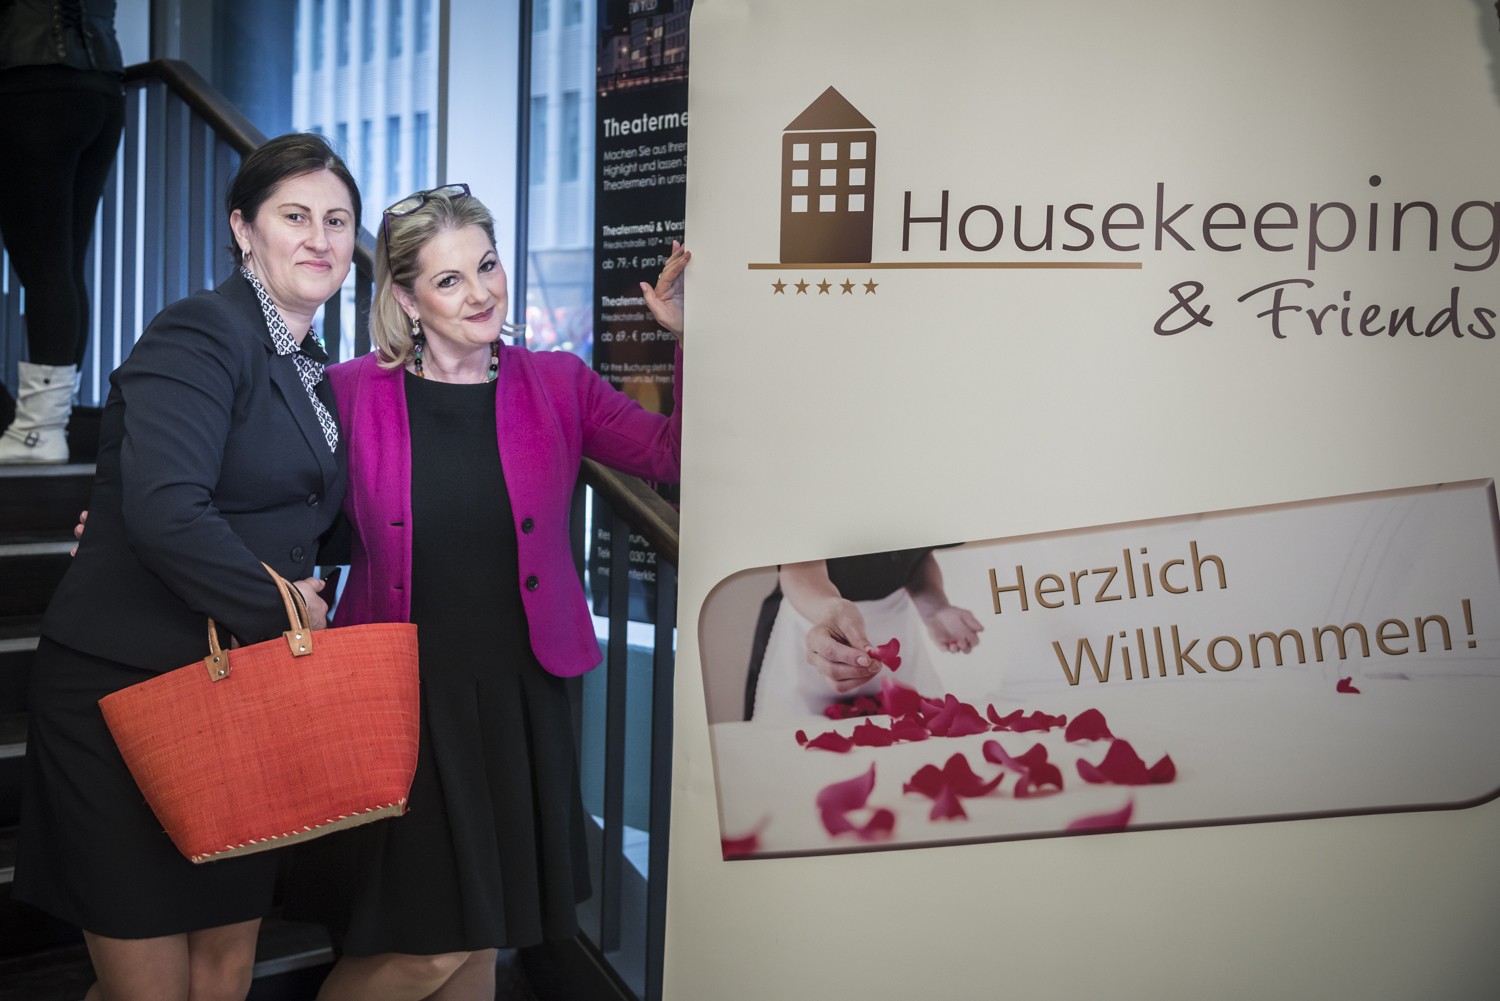 Housekeeping2016-byJensOellermann2504.jpg